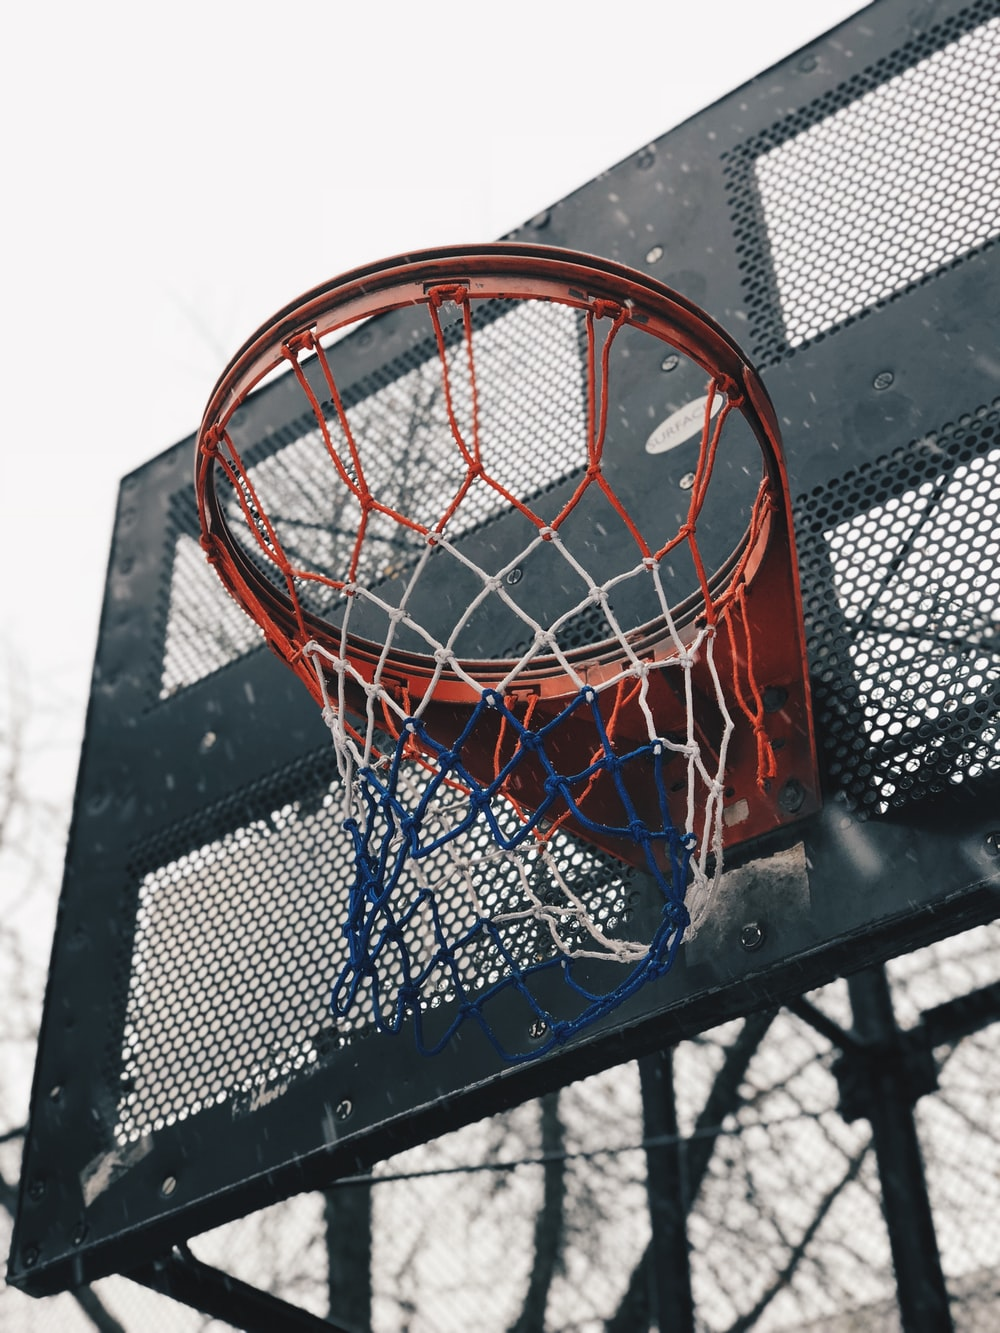 black and red outdoor basketball hoop